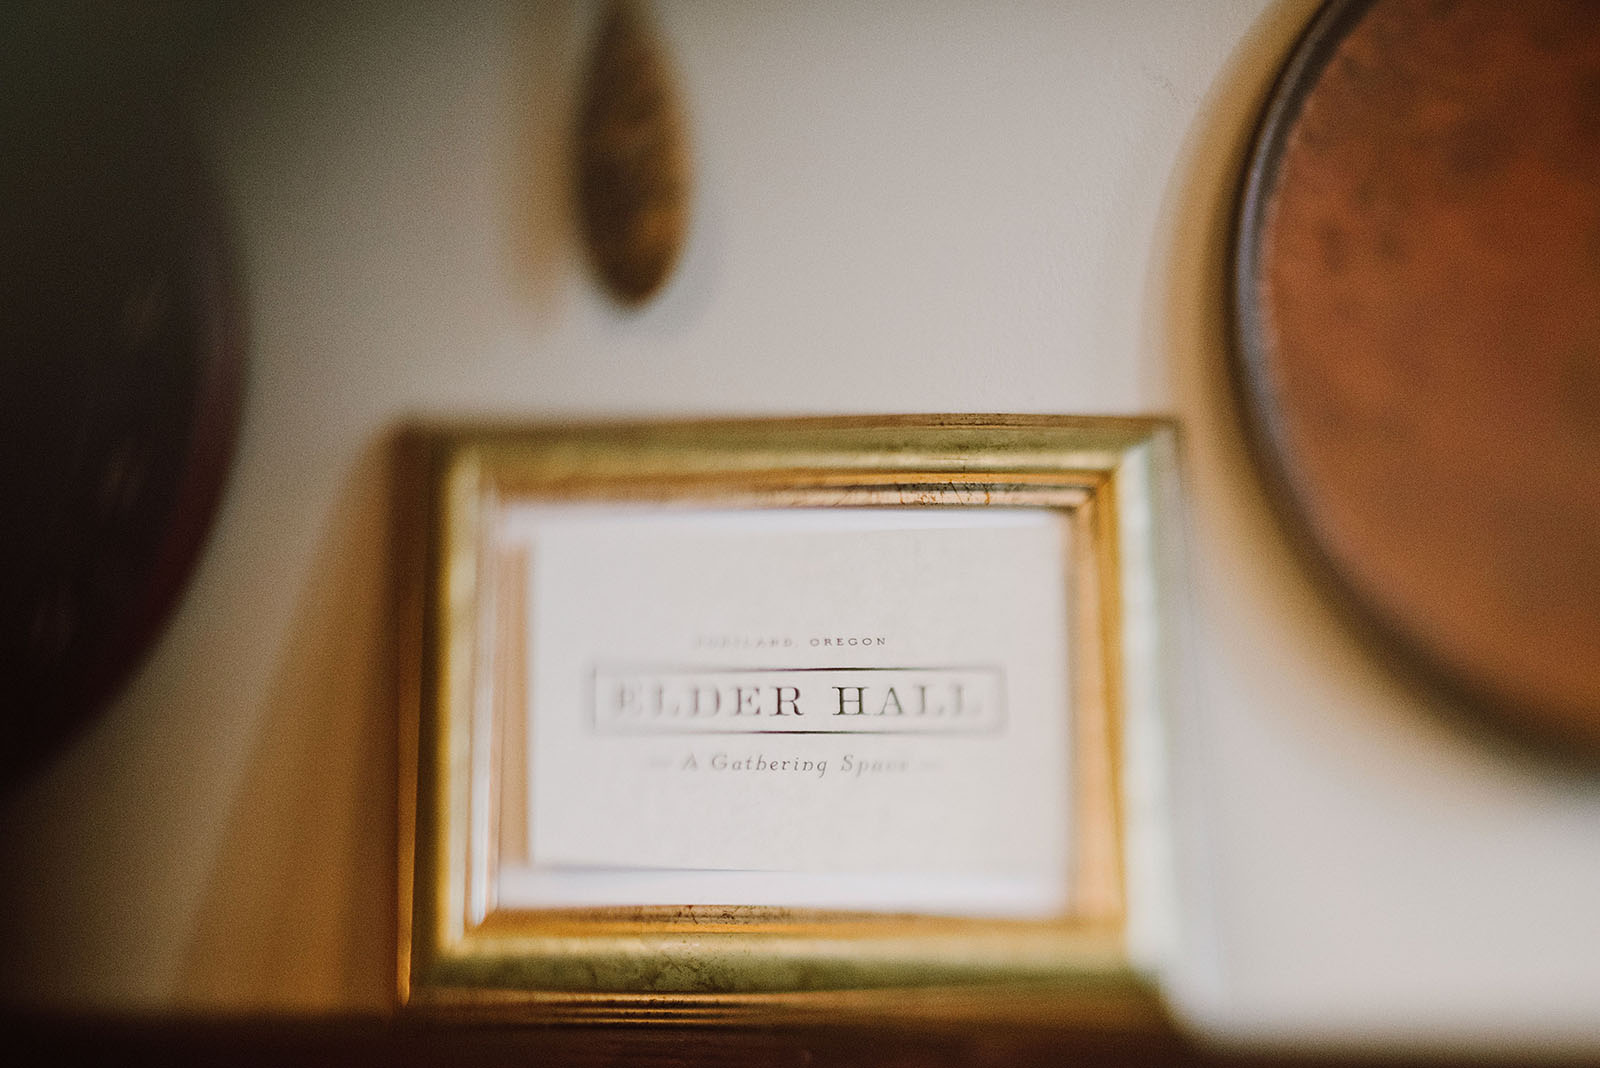 Elder Hall welcome plaque at an intimate Ned Ludd wedding